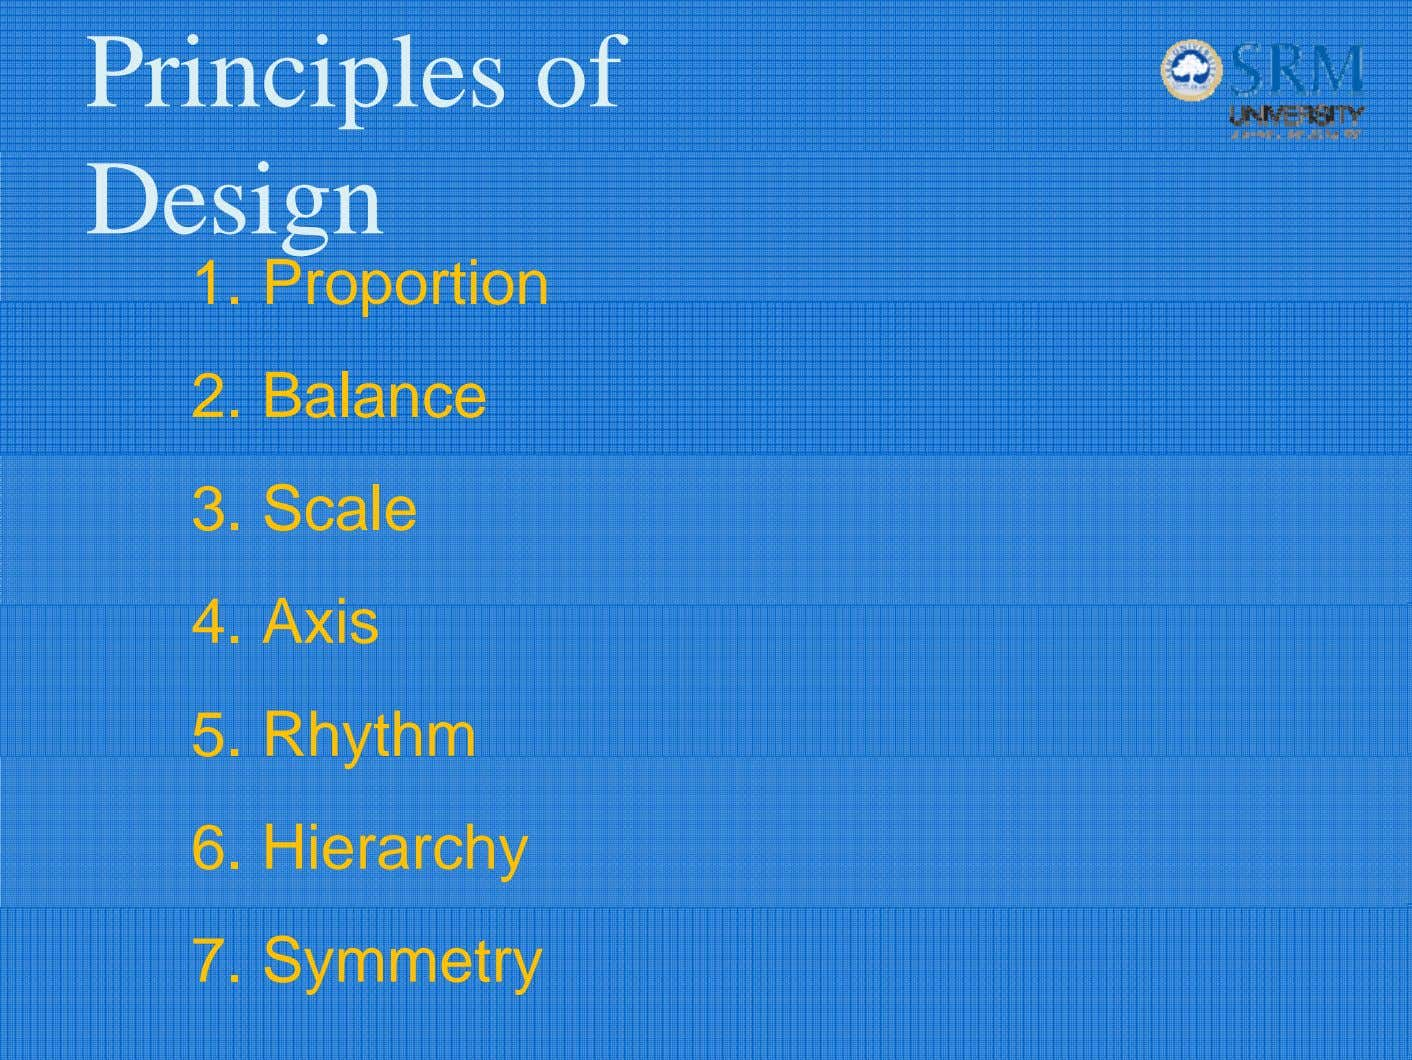 Principles of Design 1. Proportion 2. Balance 3. Scale 4. Axis 5. Rhythm 6. Hierarchy